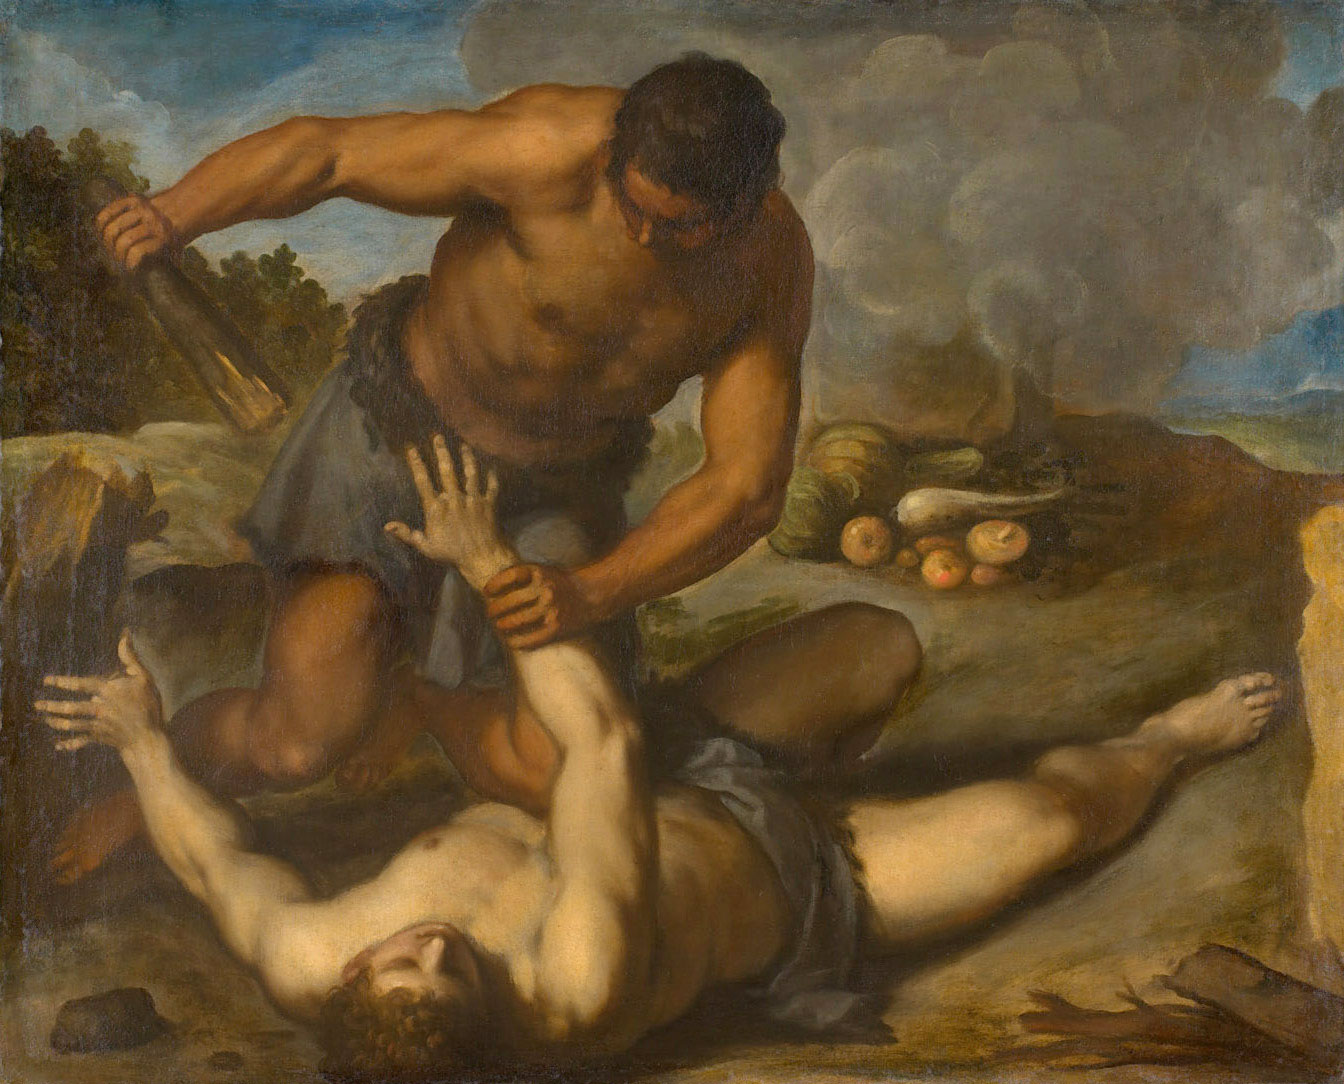 Cain and Abel by Palma il Giovane. Image via Wikimedia Commons.